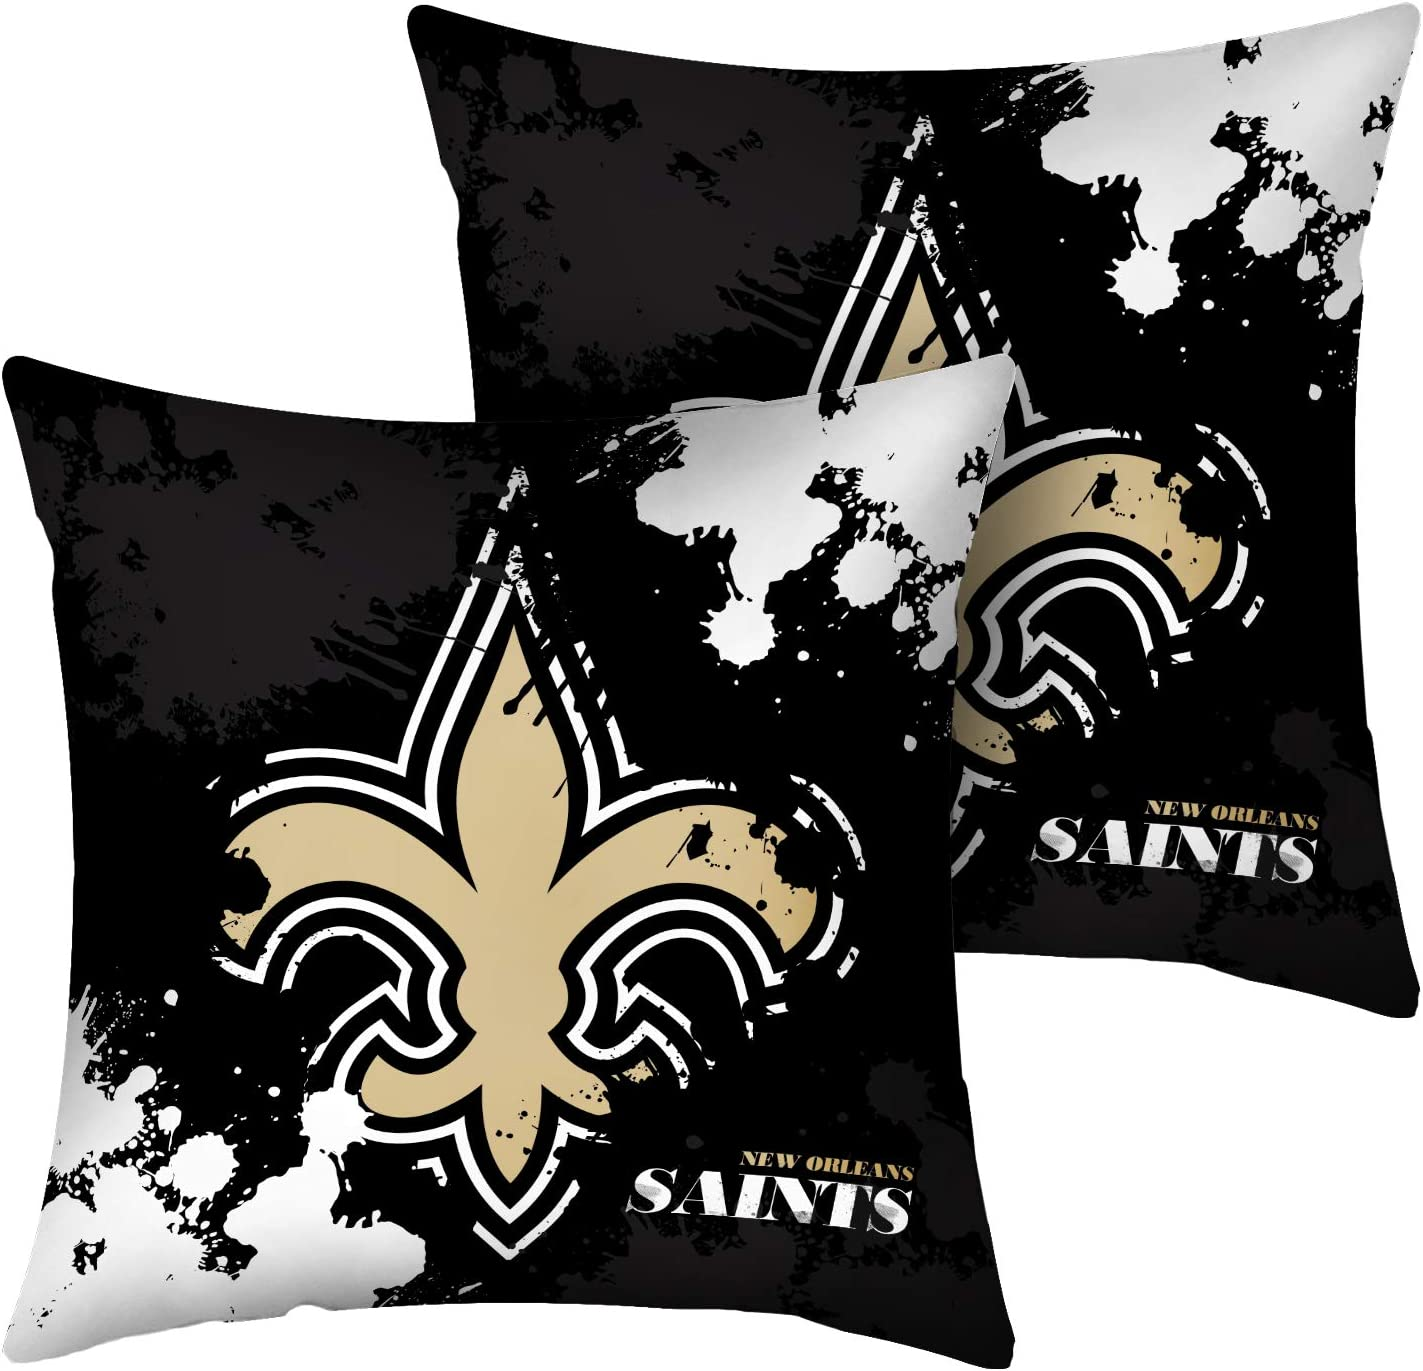 CANDICE Football Team Super Bowl Throw Pillow Covers Pillow Cases Decorative Pillowcase Protecter with Zipper 2 Pcs Without Insert